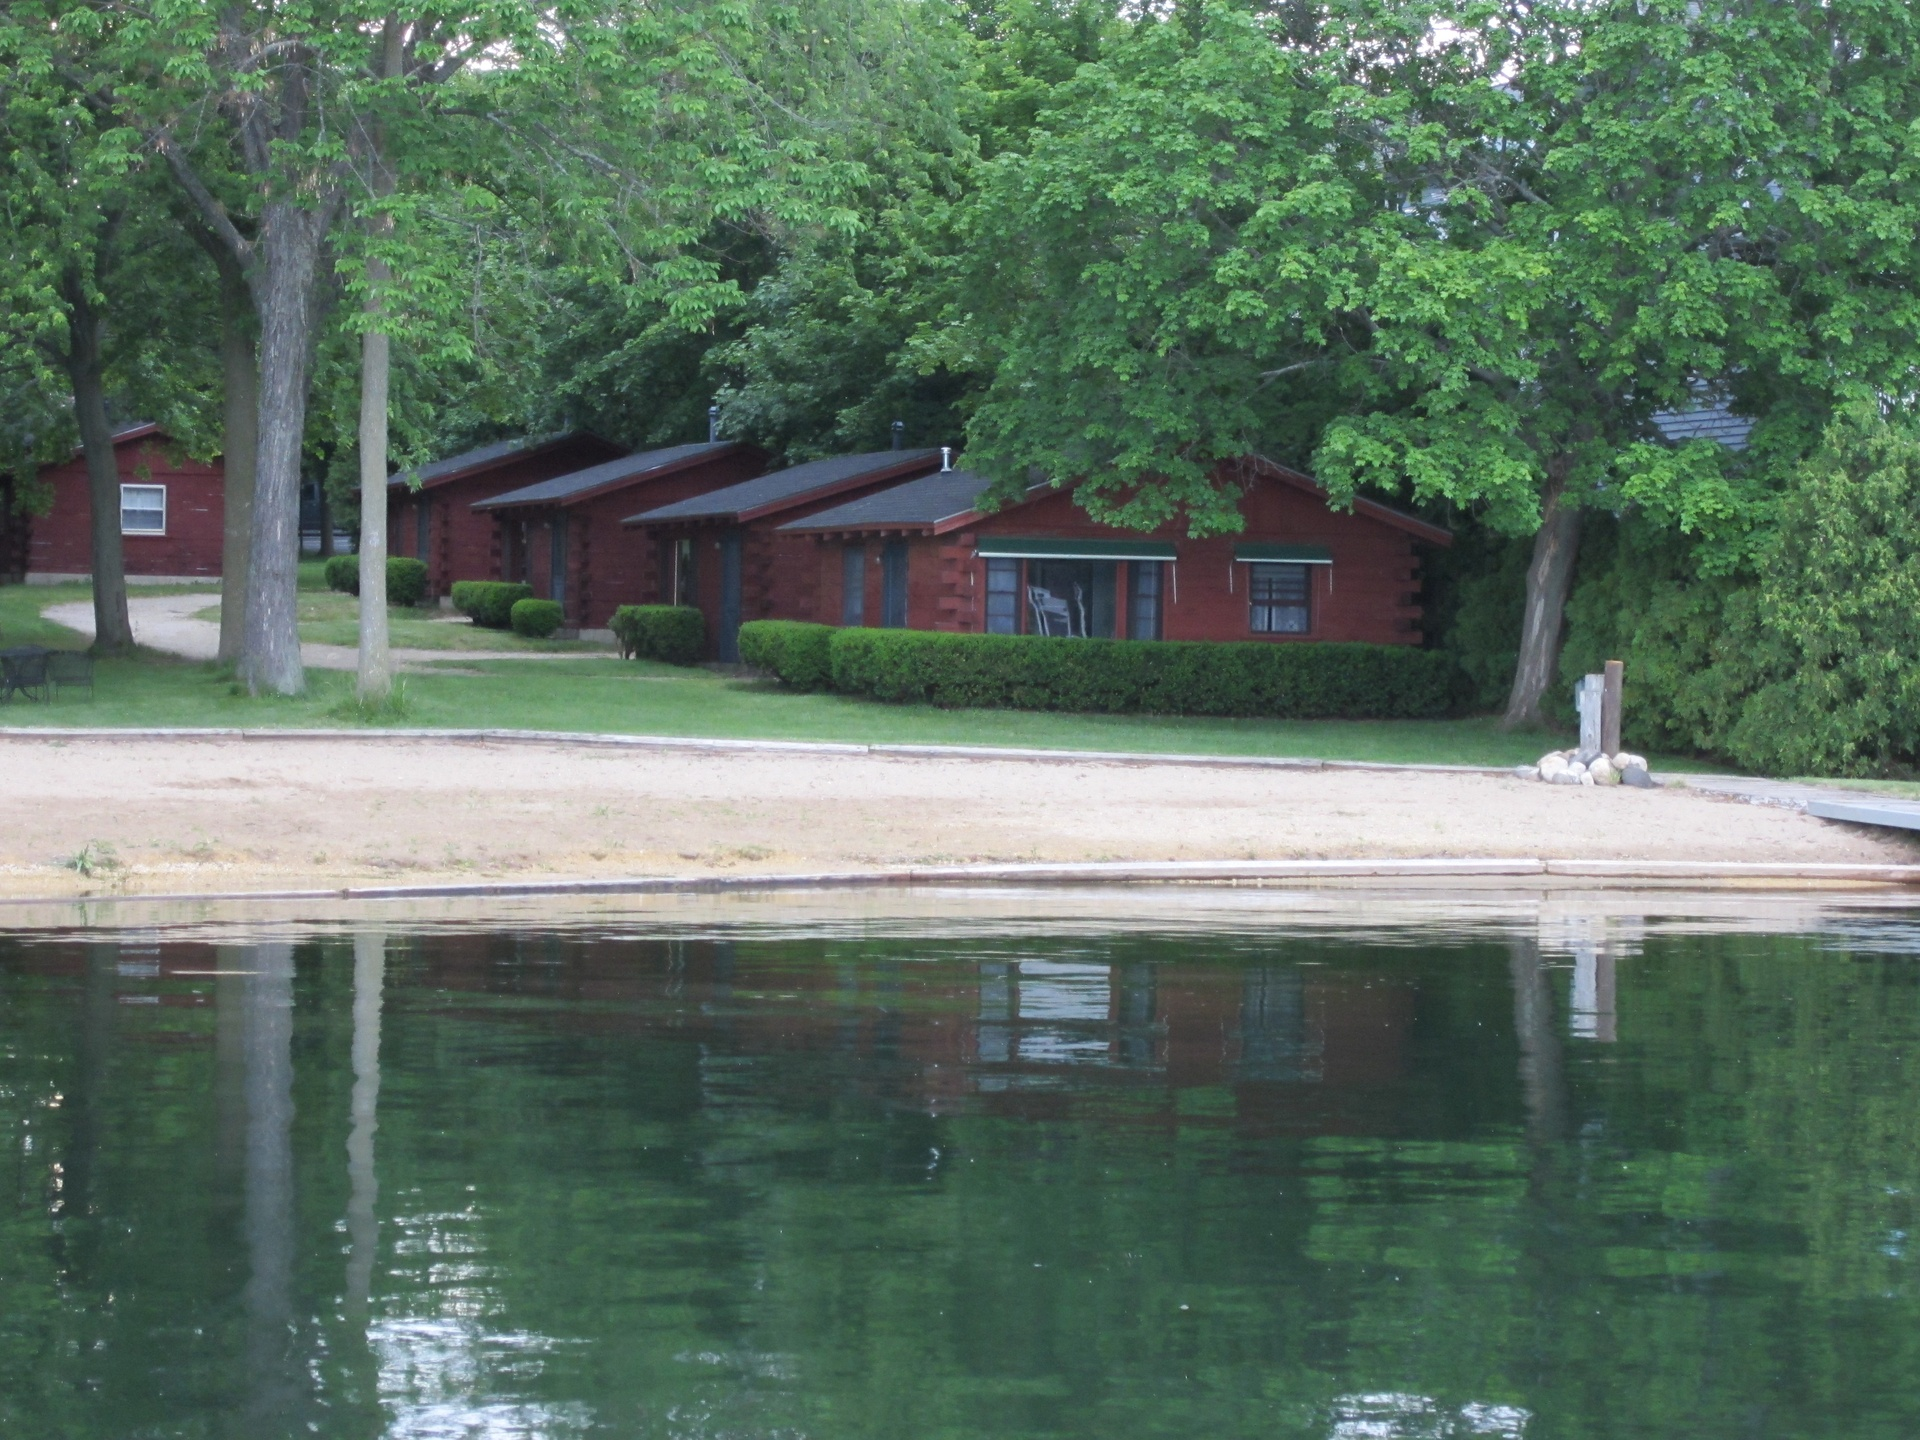 Cabins with reflection on calm evening